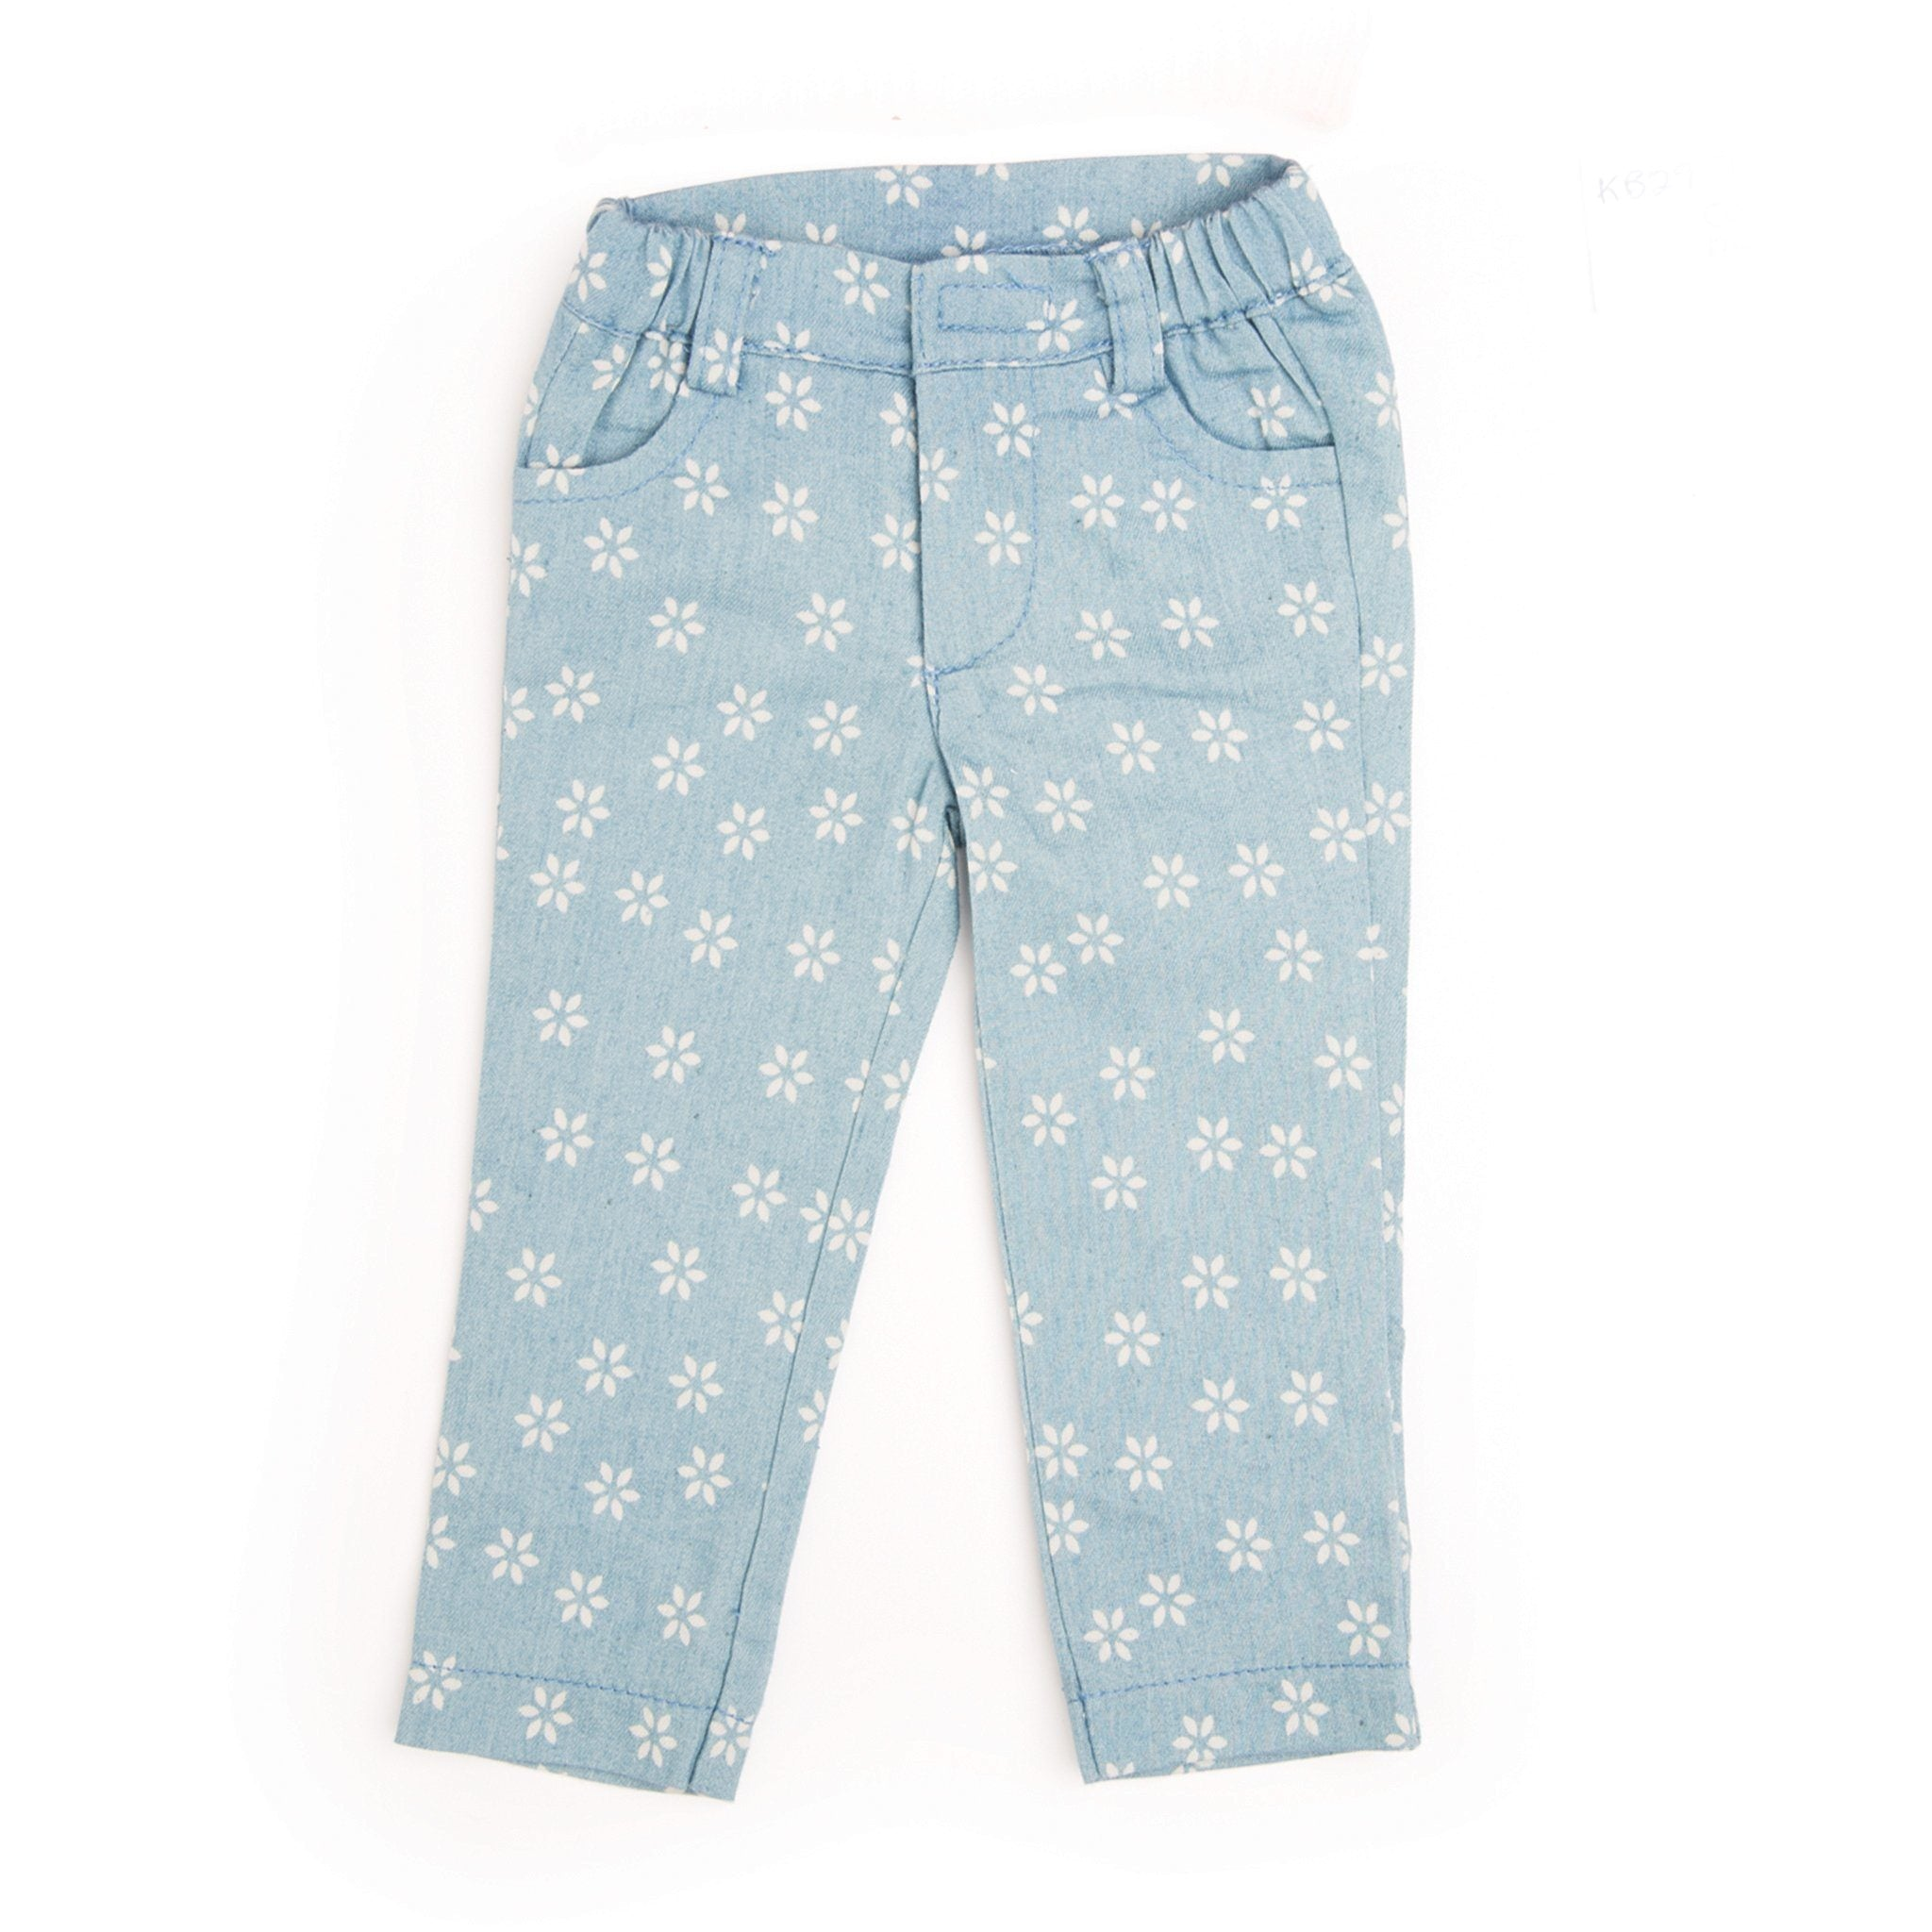 The Cat's Meow light blue jeans with printed flower pattern fits all 18 inch dolls.